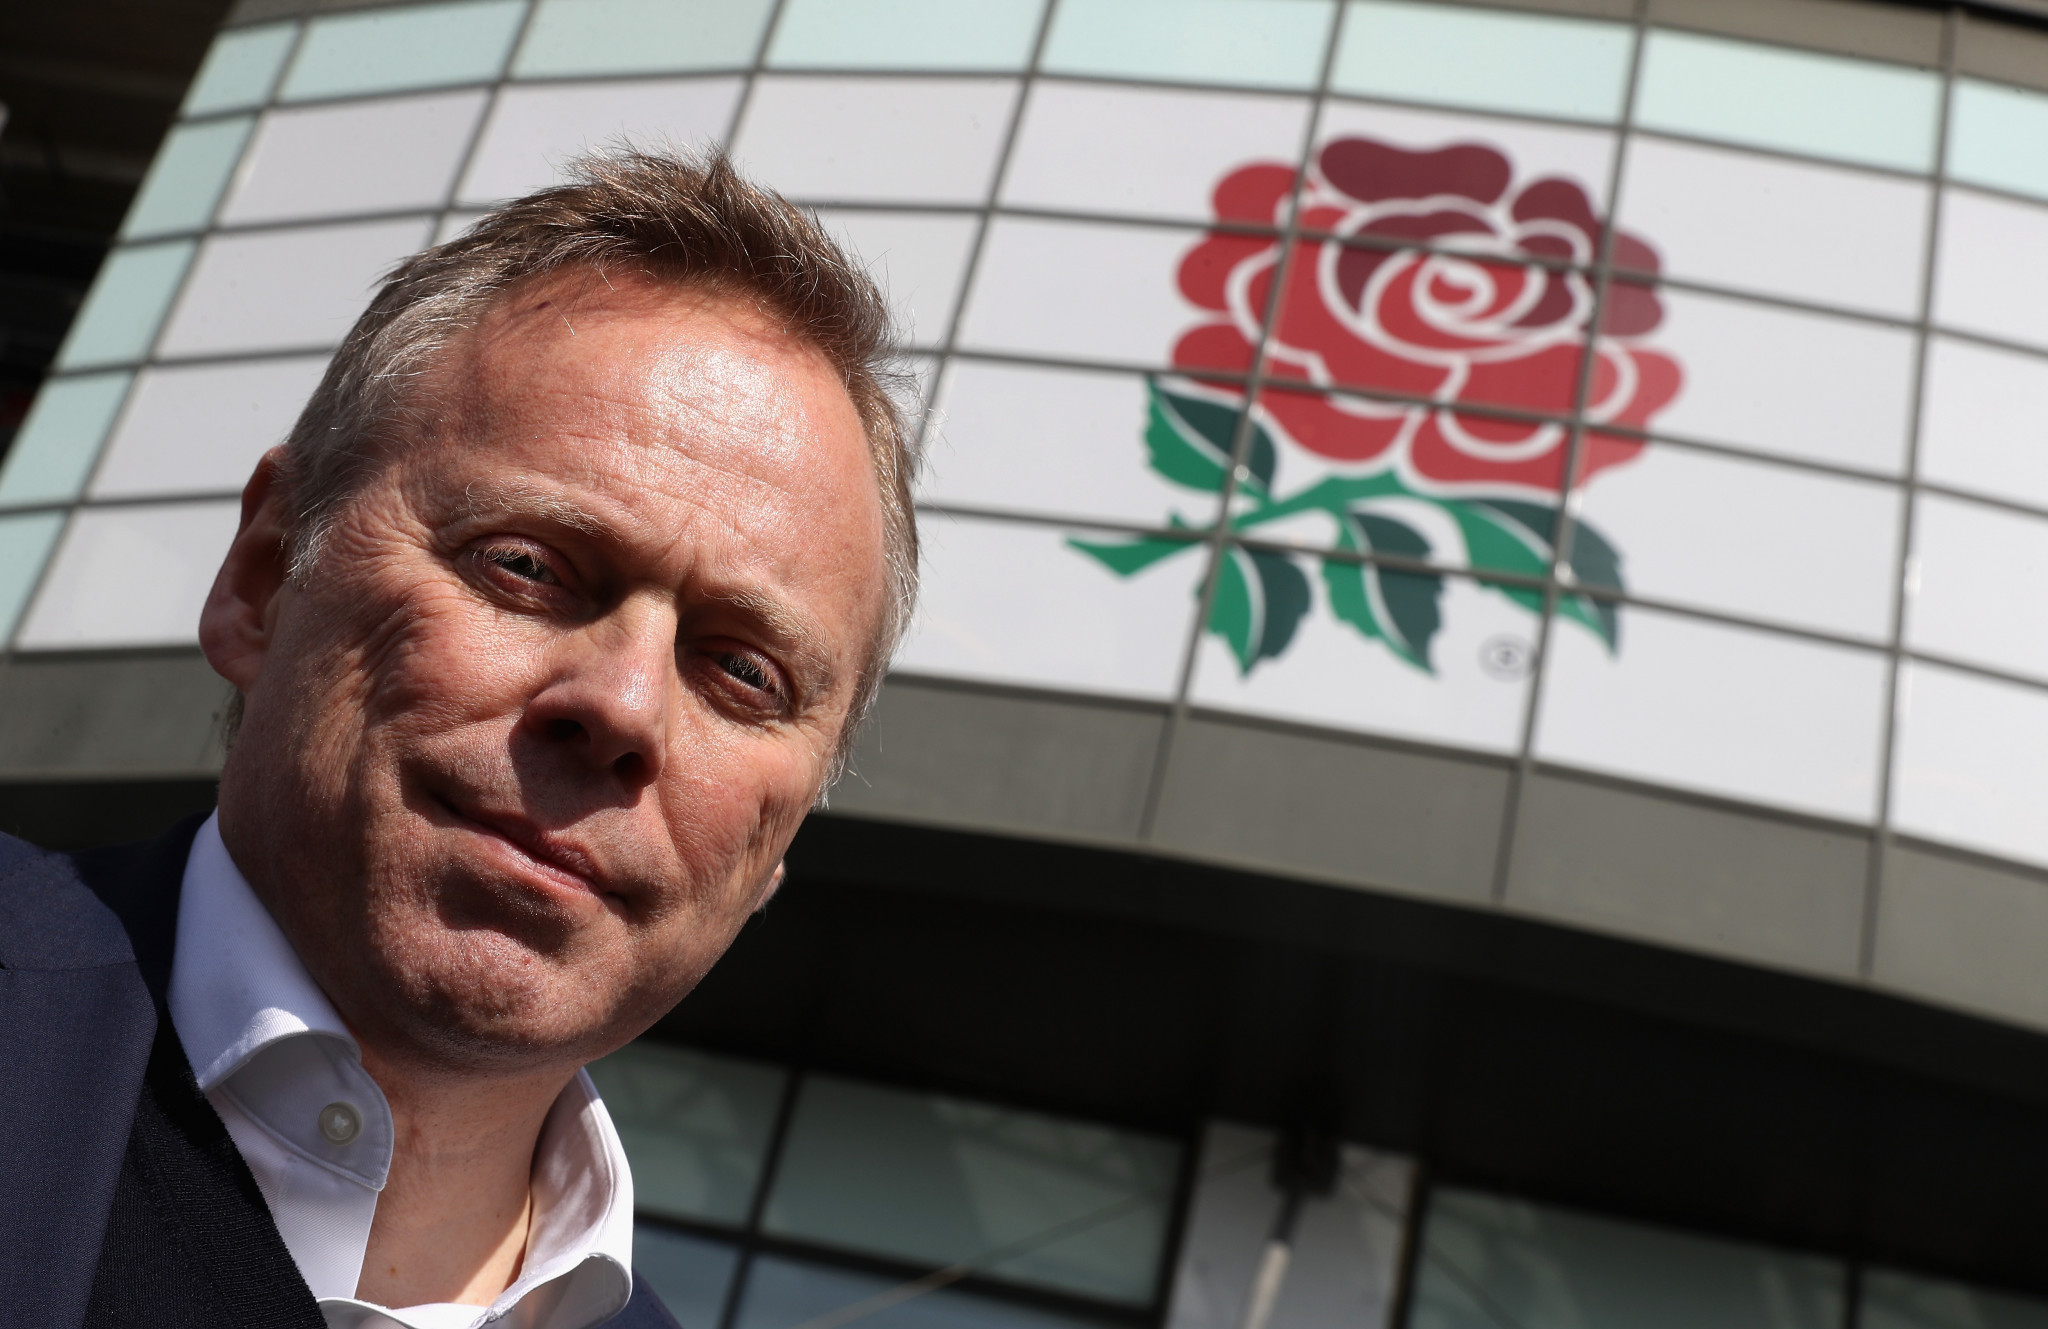 Rugby World Cup Board appoints two organisers of last two tournaments to Board